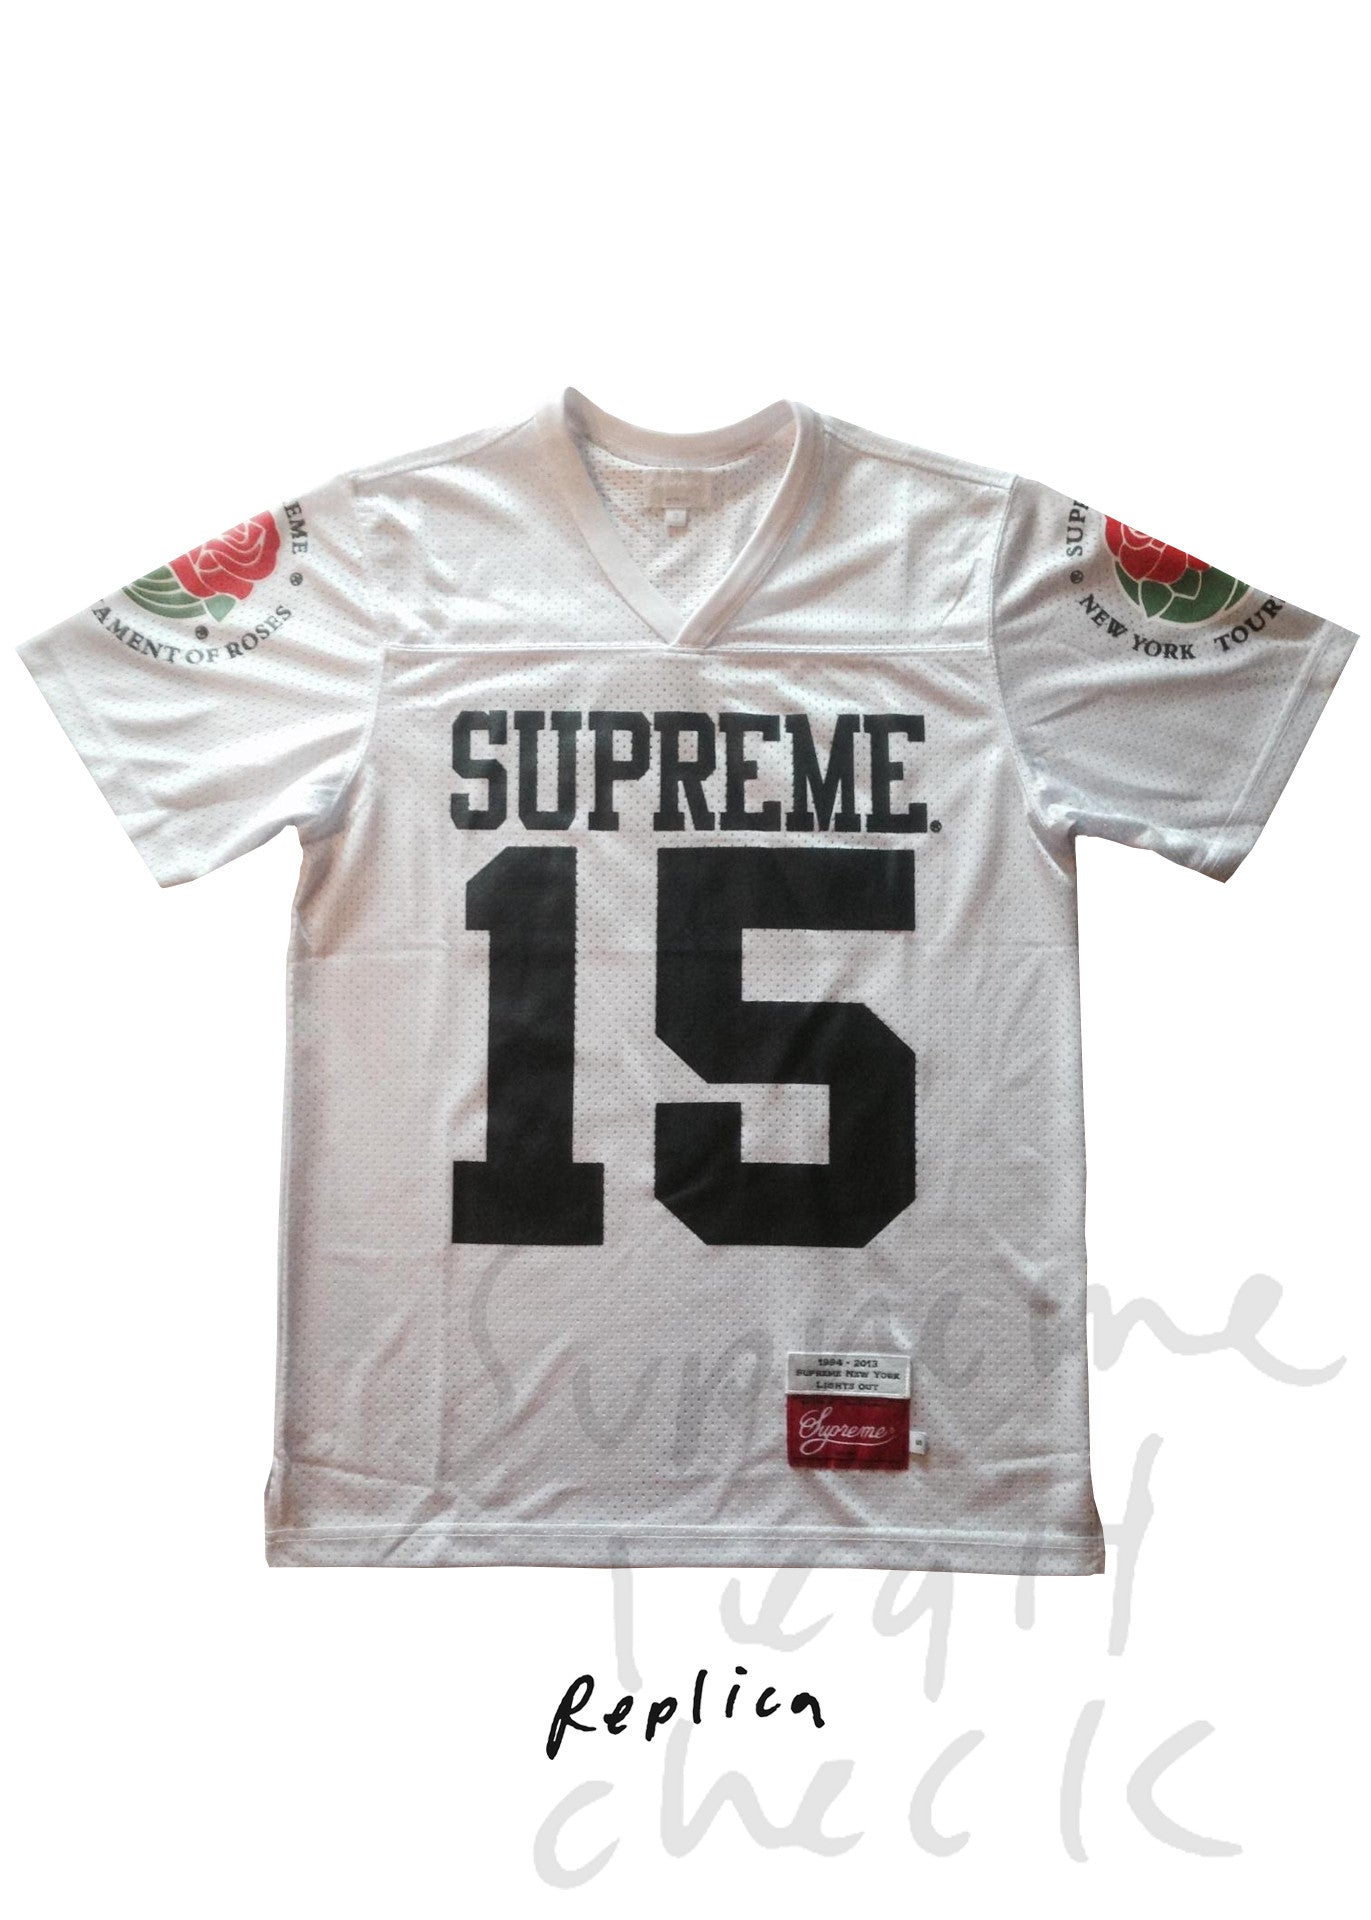 Supreme Rose Football Top (S/S 2013)